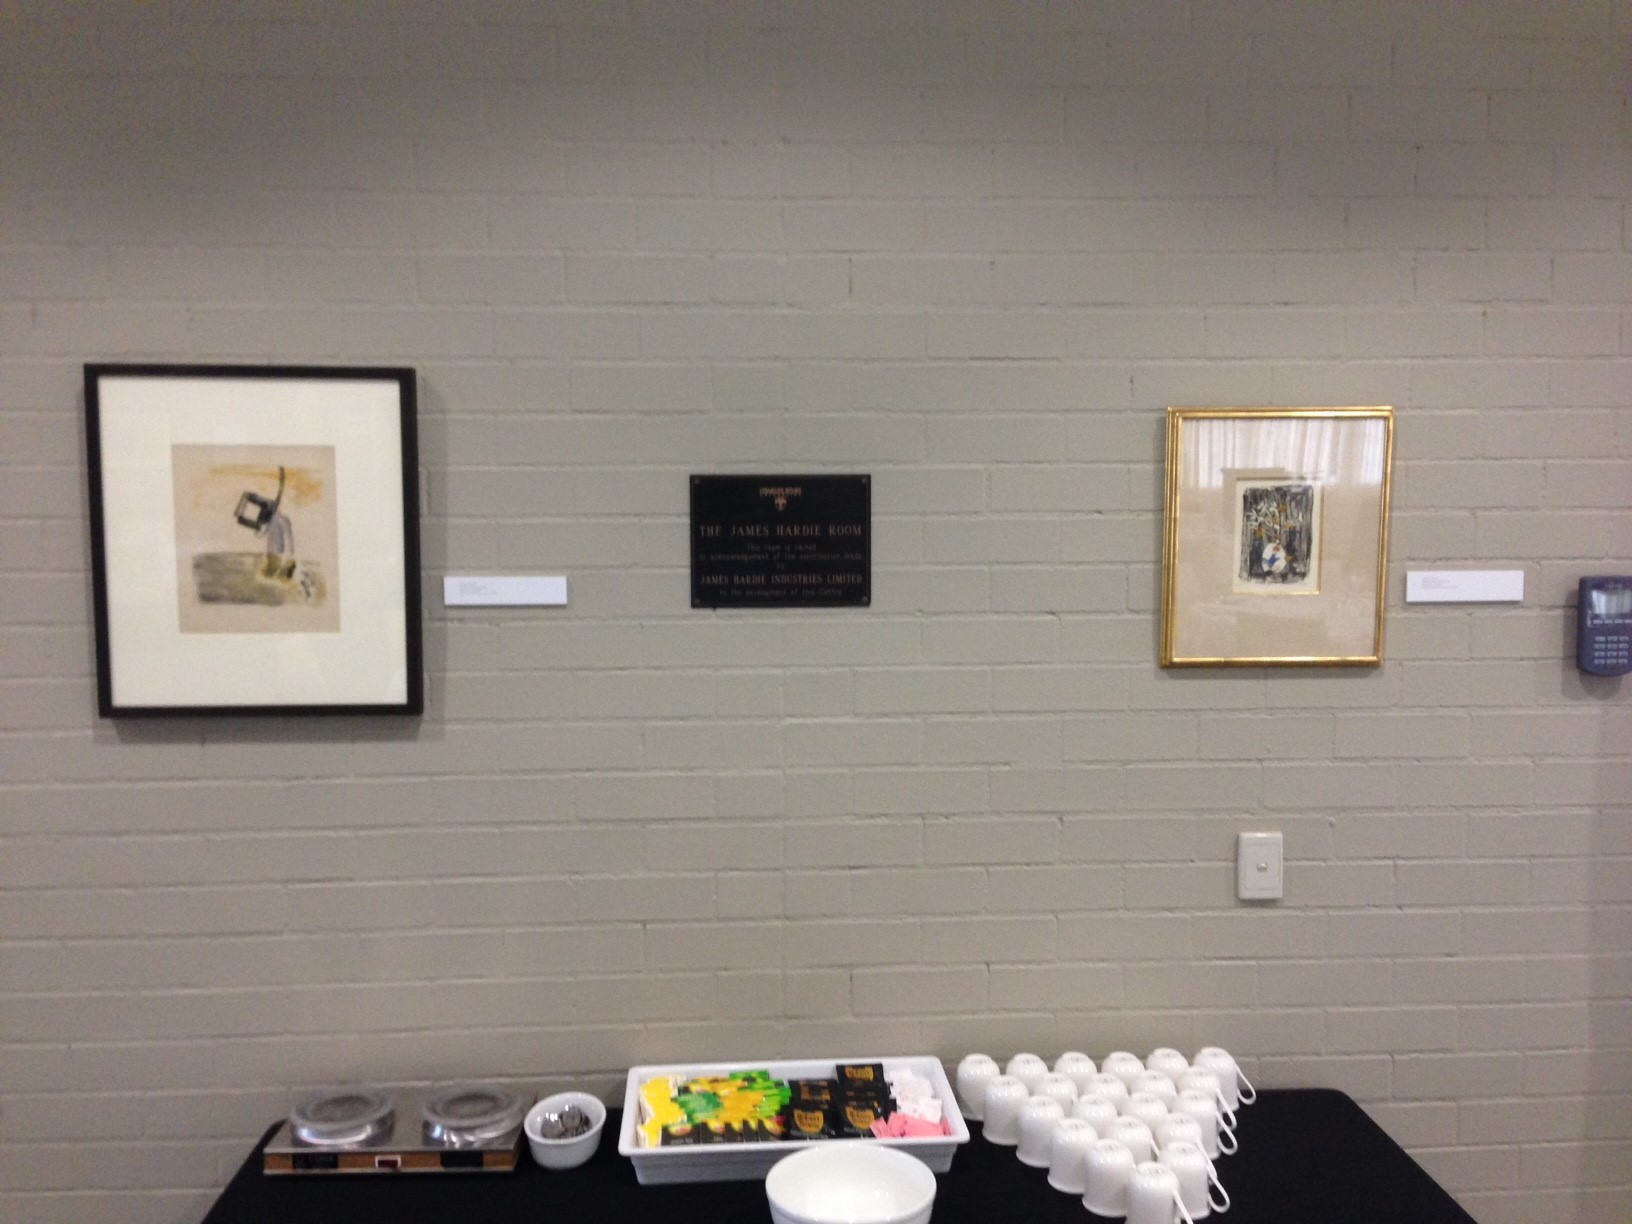 Artwork on display at the Chancellor's installation in 2014